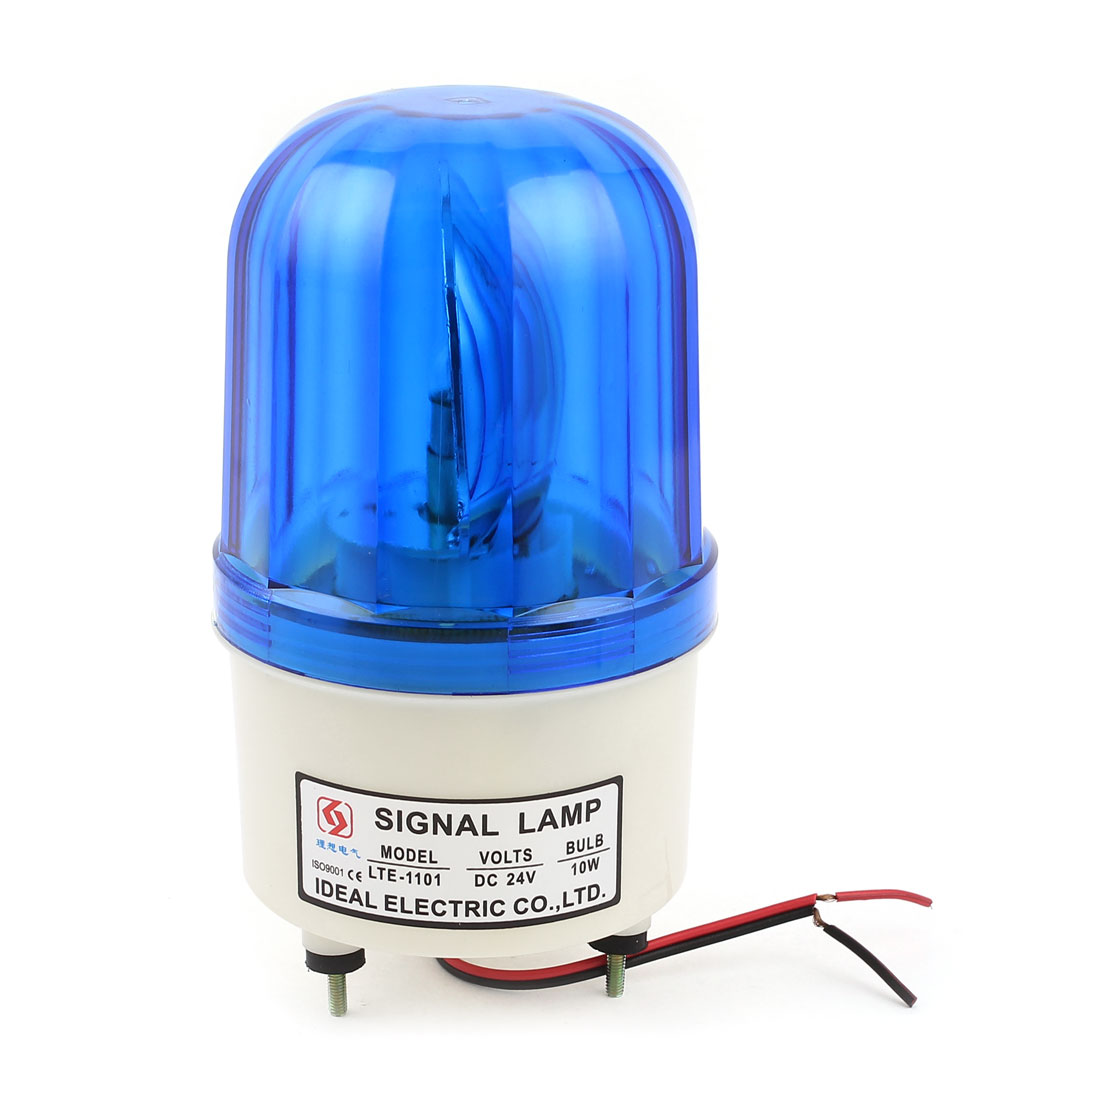 Unique Bargains Industrial Blue LED Tower Buzzer Sound Lamp Flash Light Bulb 10W DC 24V